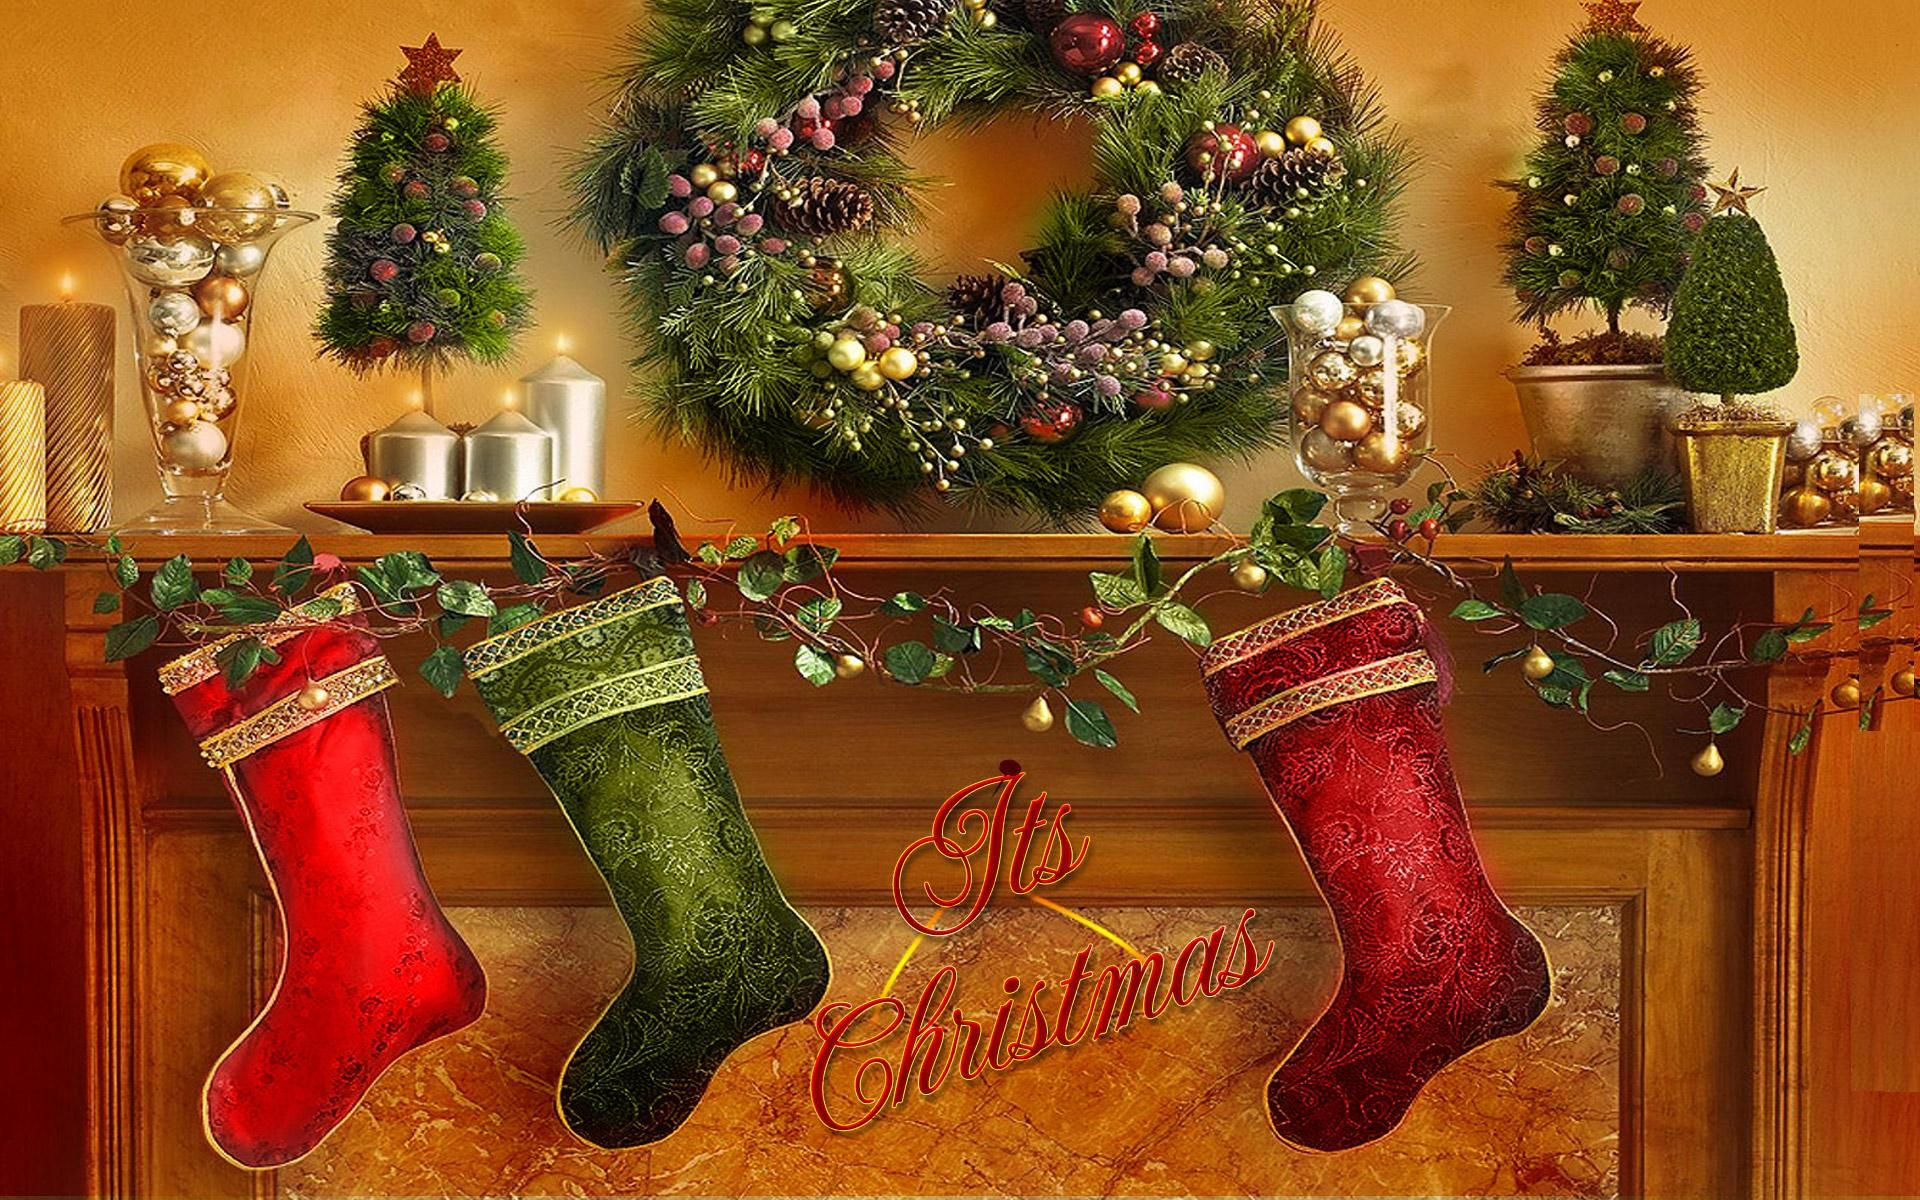 Simple Wallpaper High Resolution Christmas - 0be3c3d8a55a0f40c81756dd694cce8c  Graphic_67158.jpg